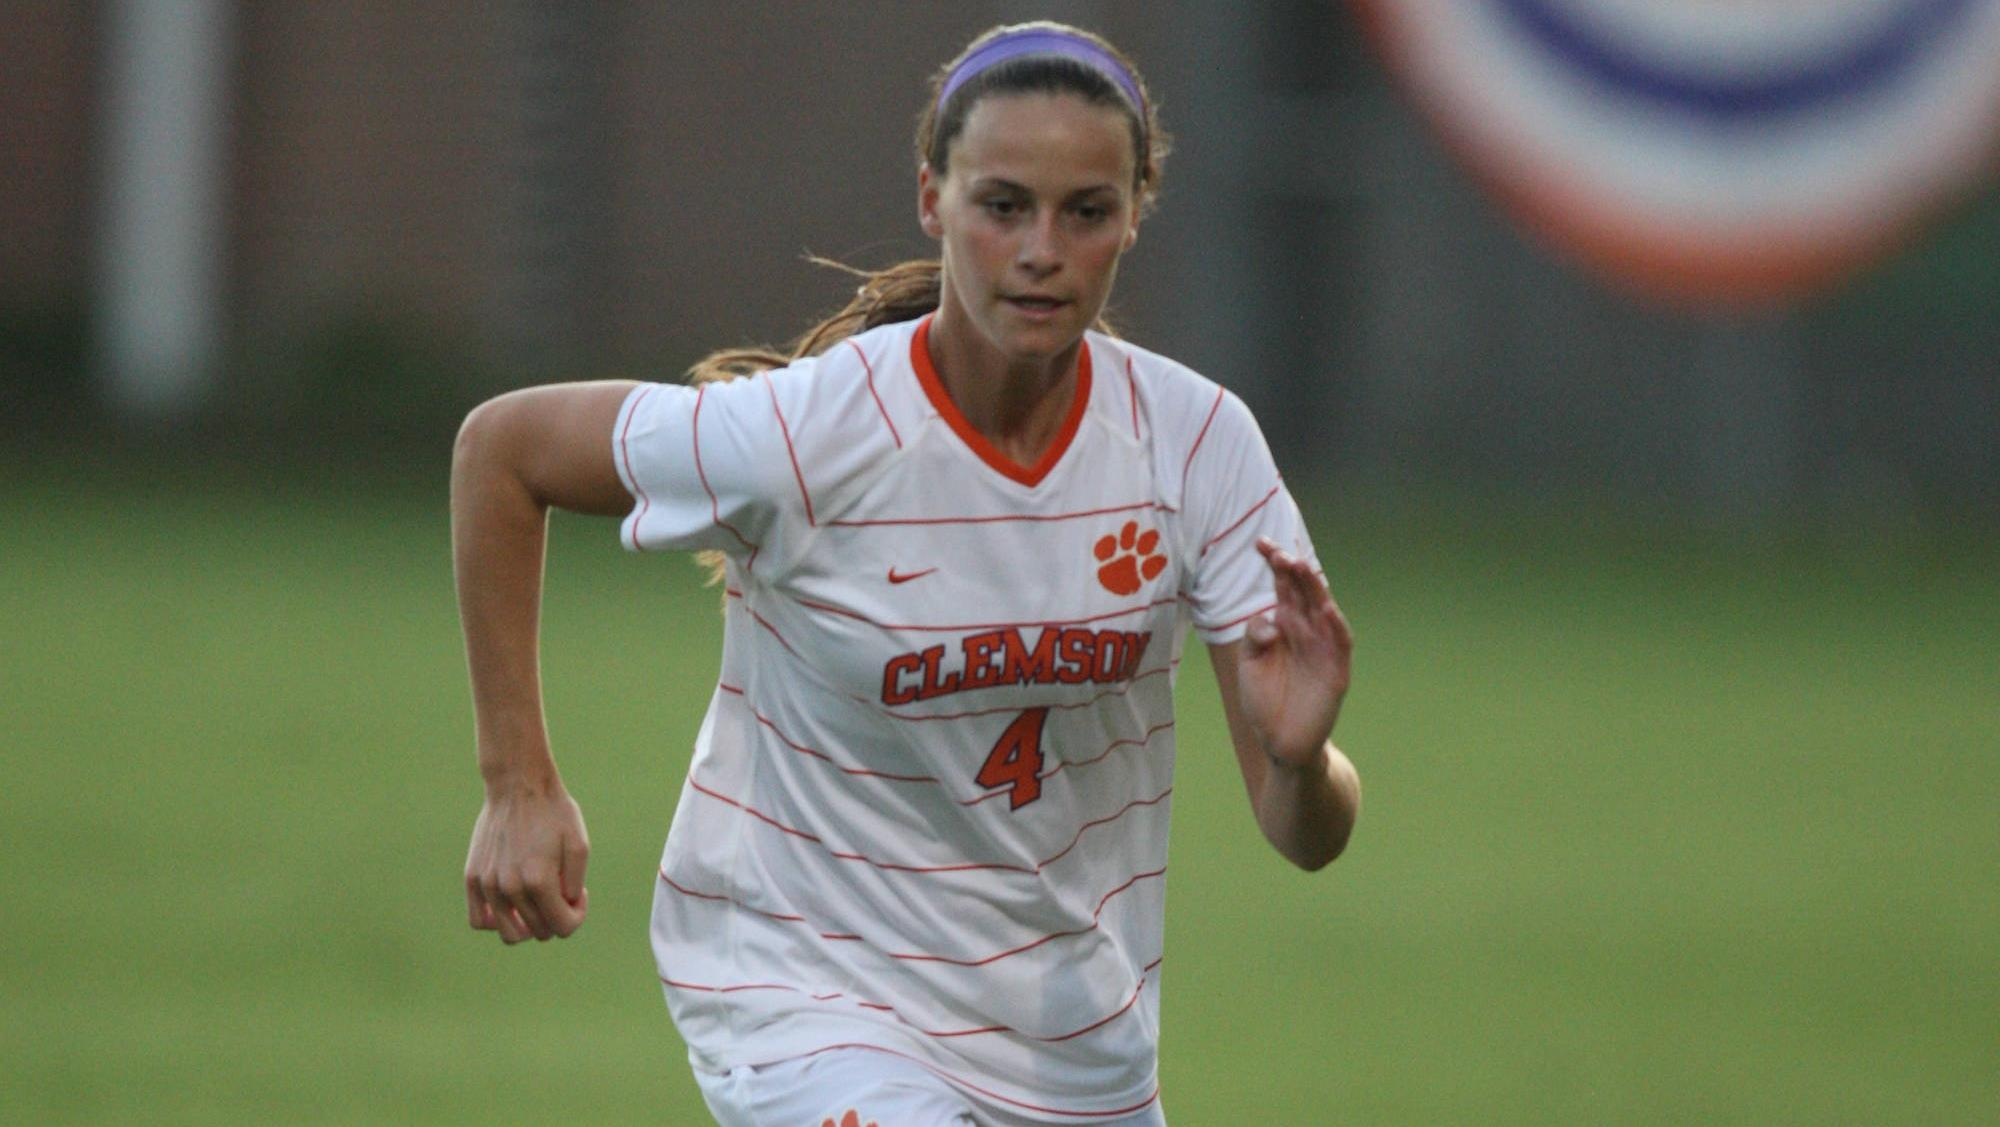 Clemson Women's Soccer Team Defeats South Carolina in Double Overtime in Columbia